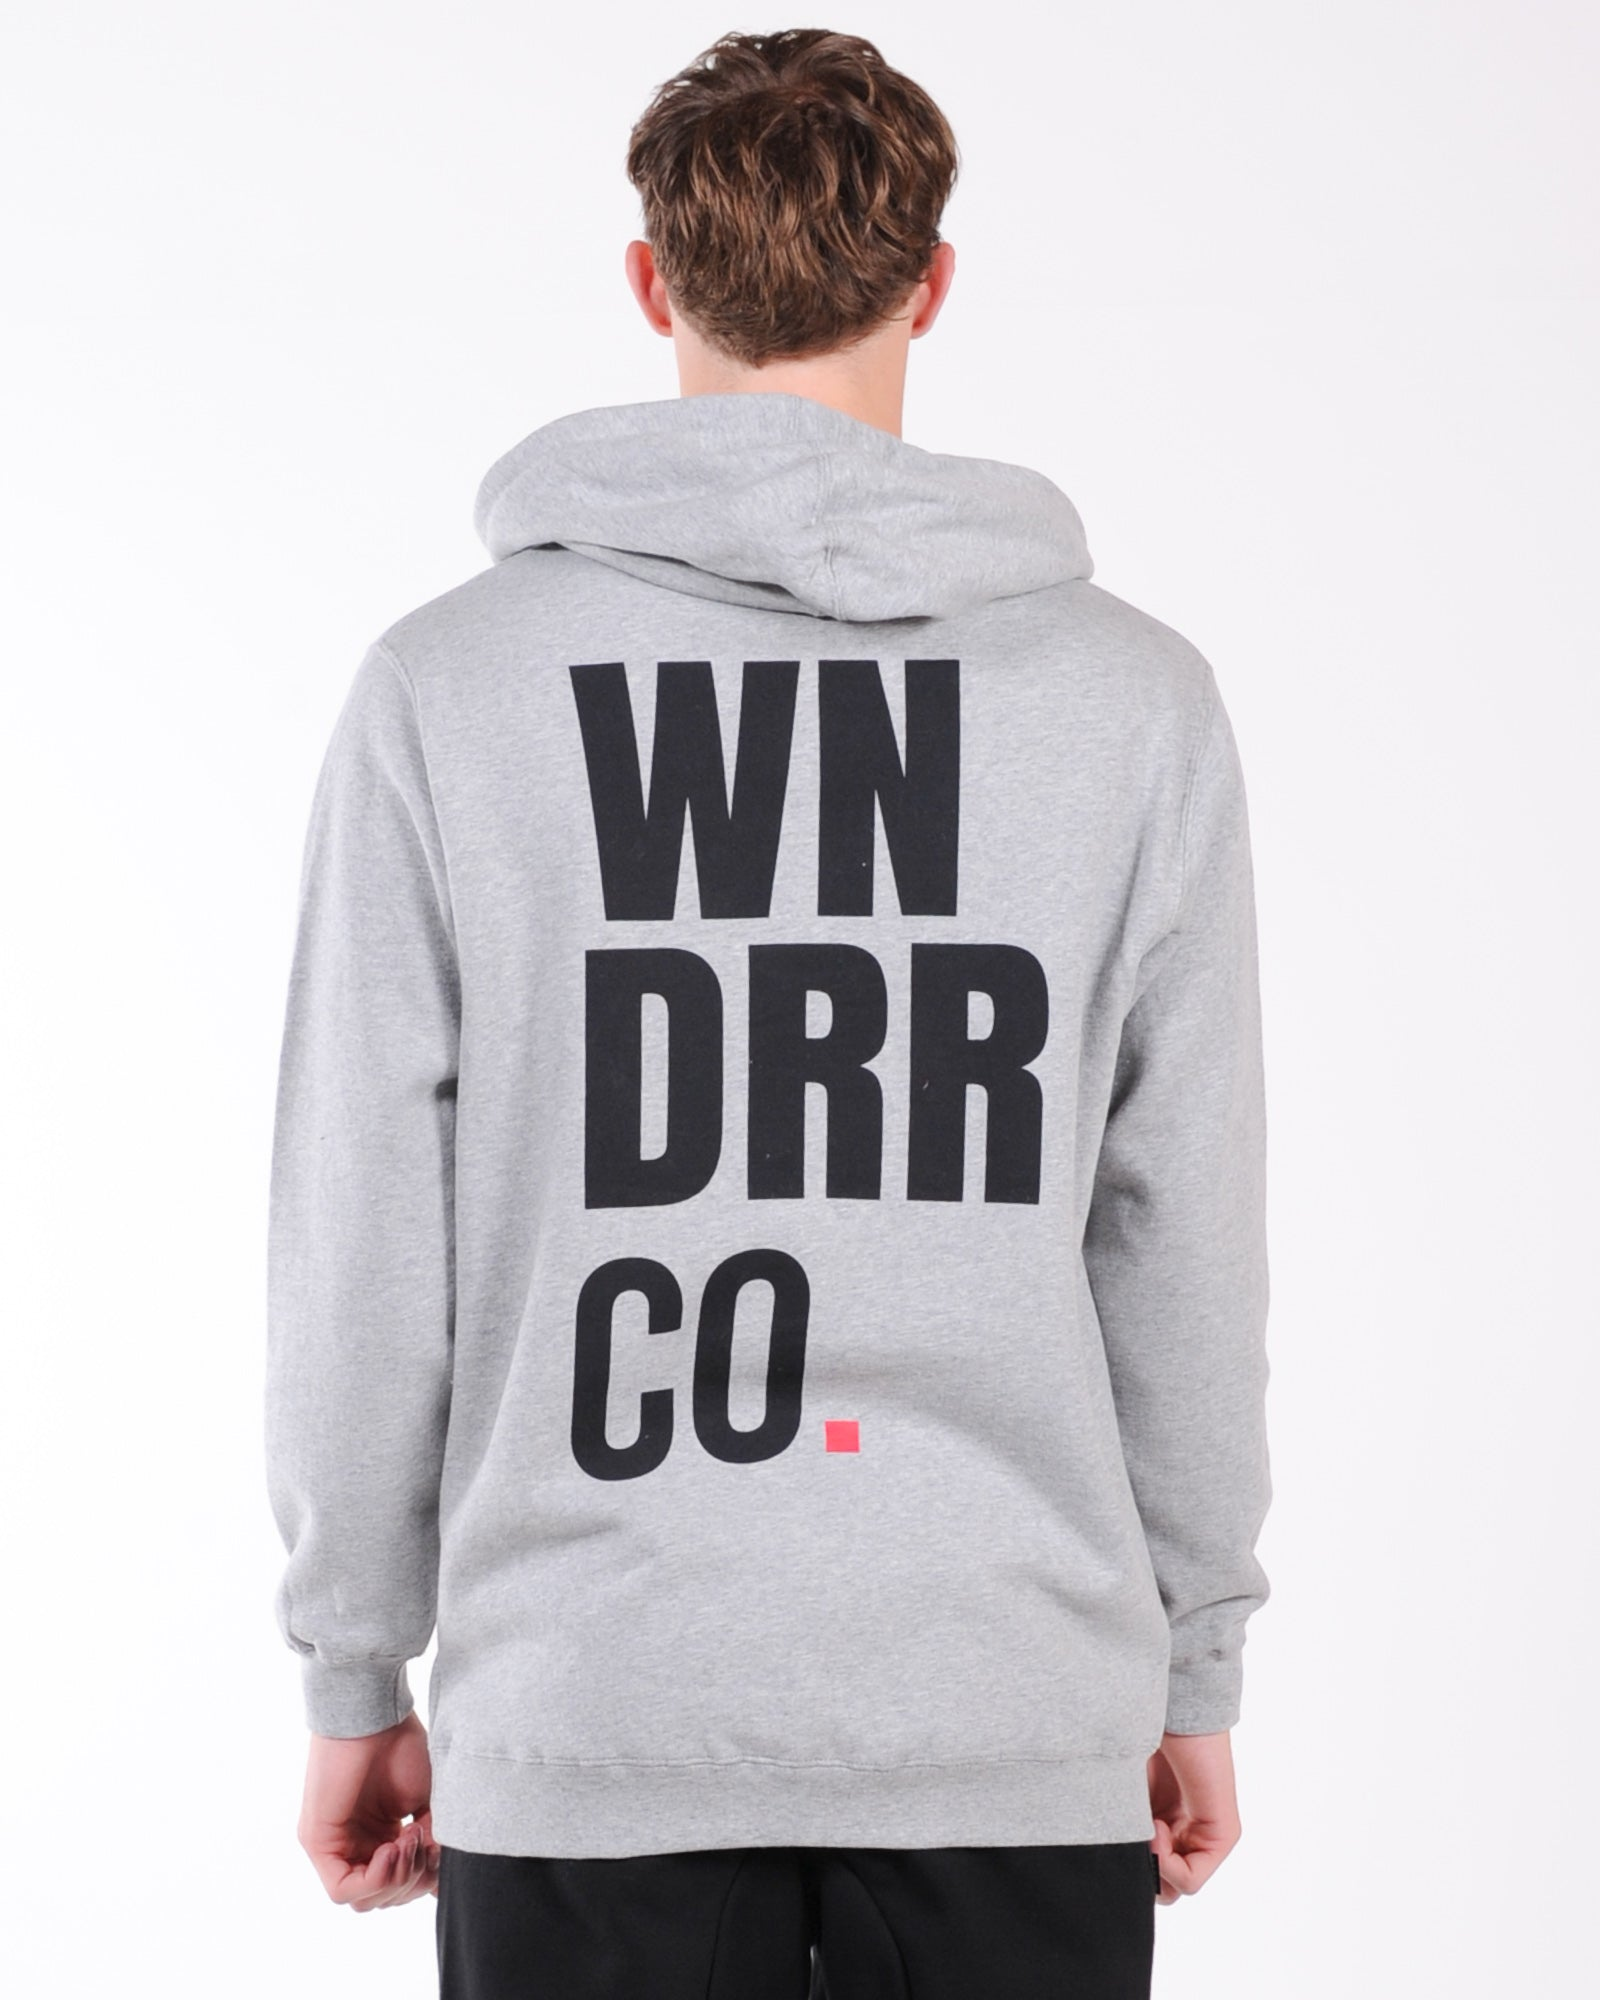 Wndrr Co Hood Sweat - Grey Marle